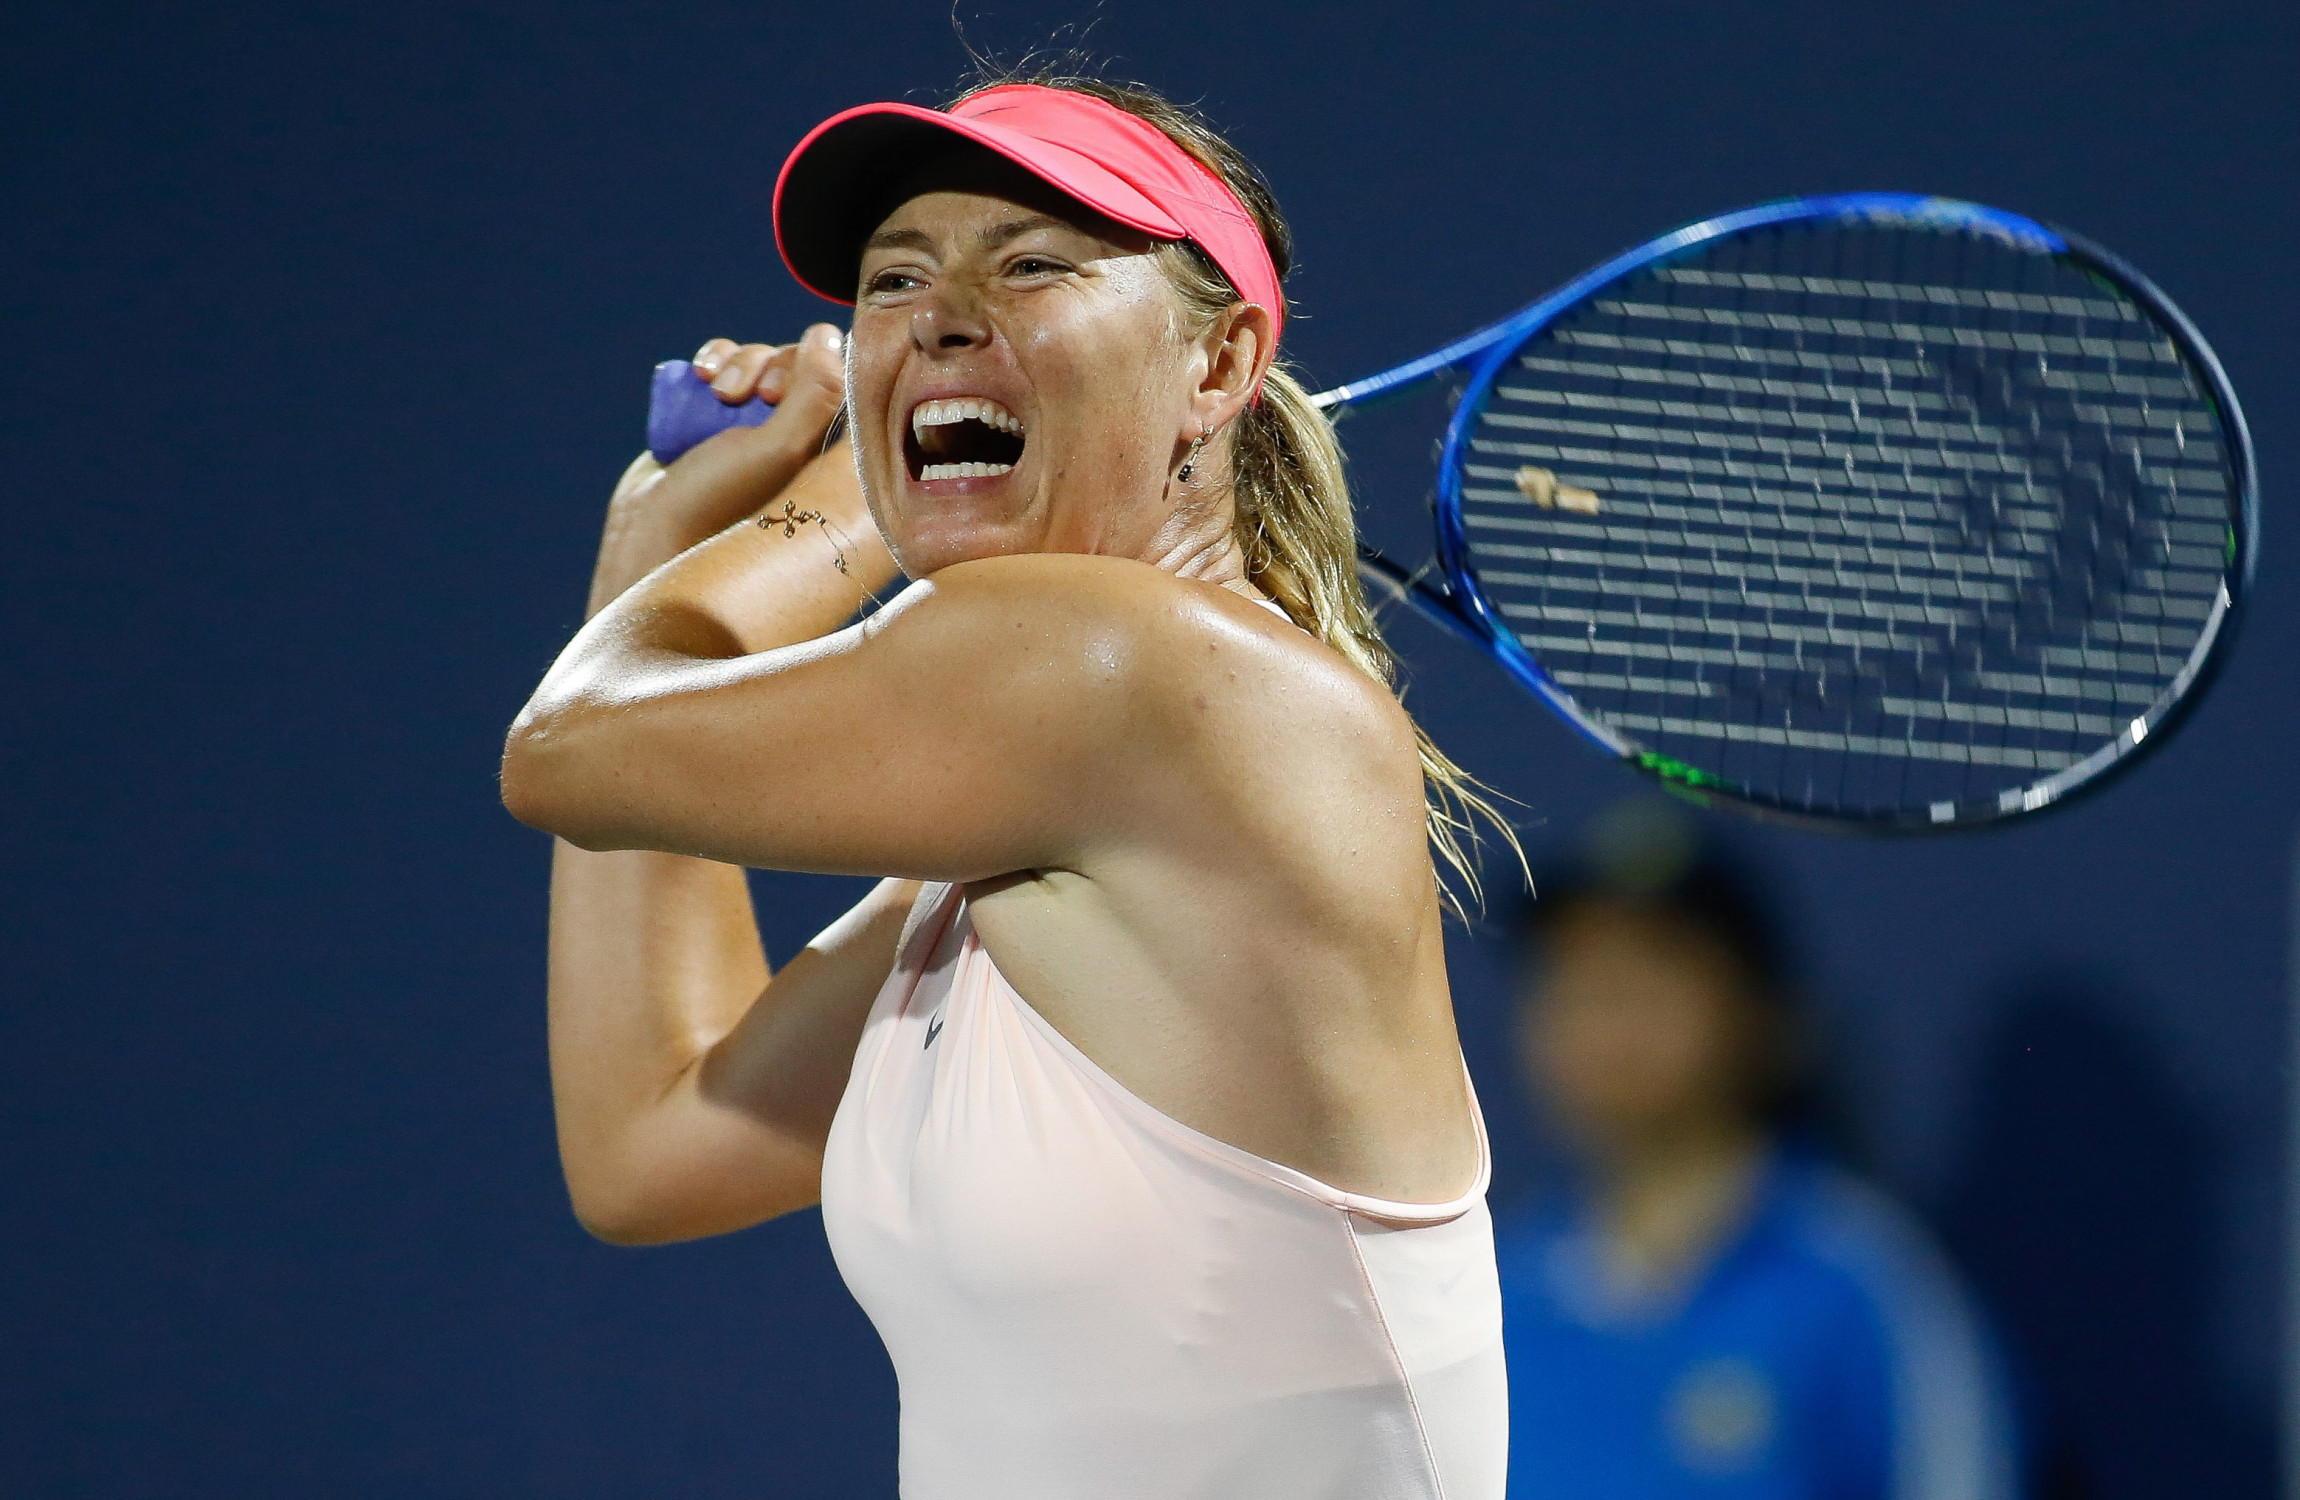 US Open gives Maria Sharapova a chance - now can she use it?